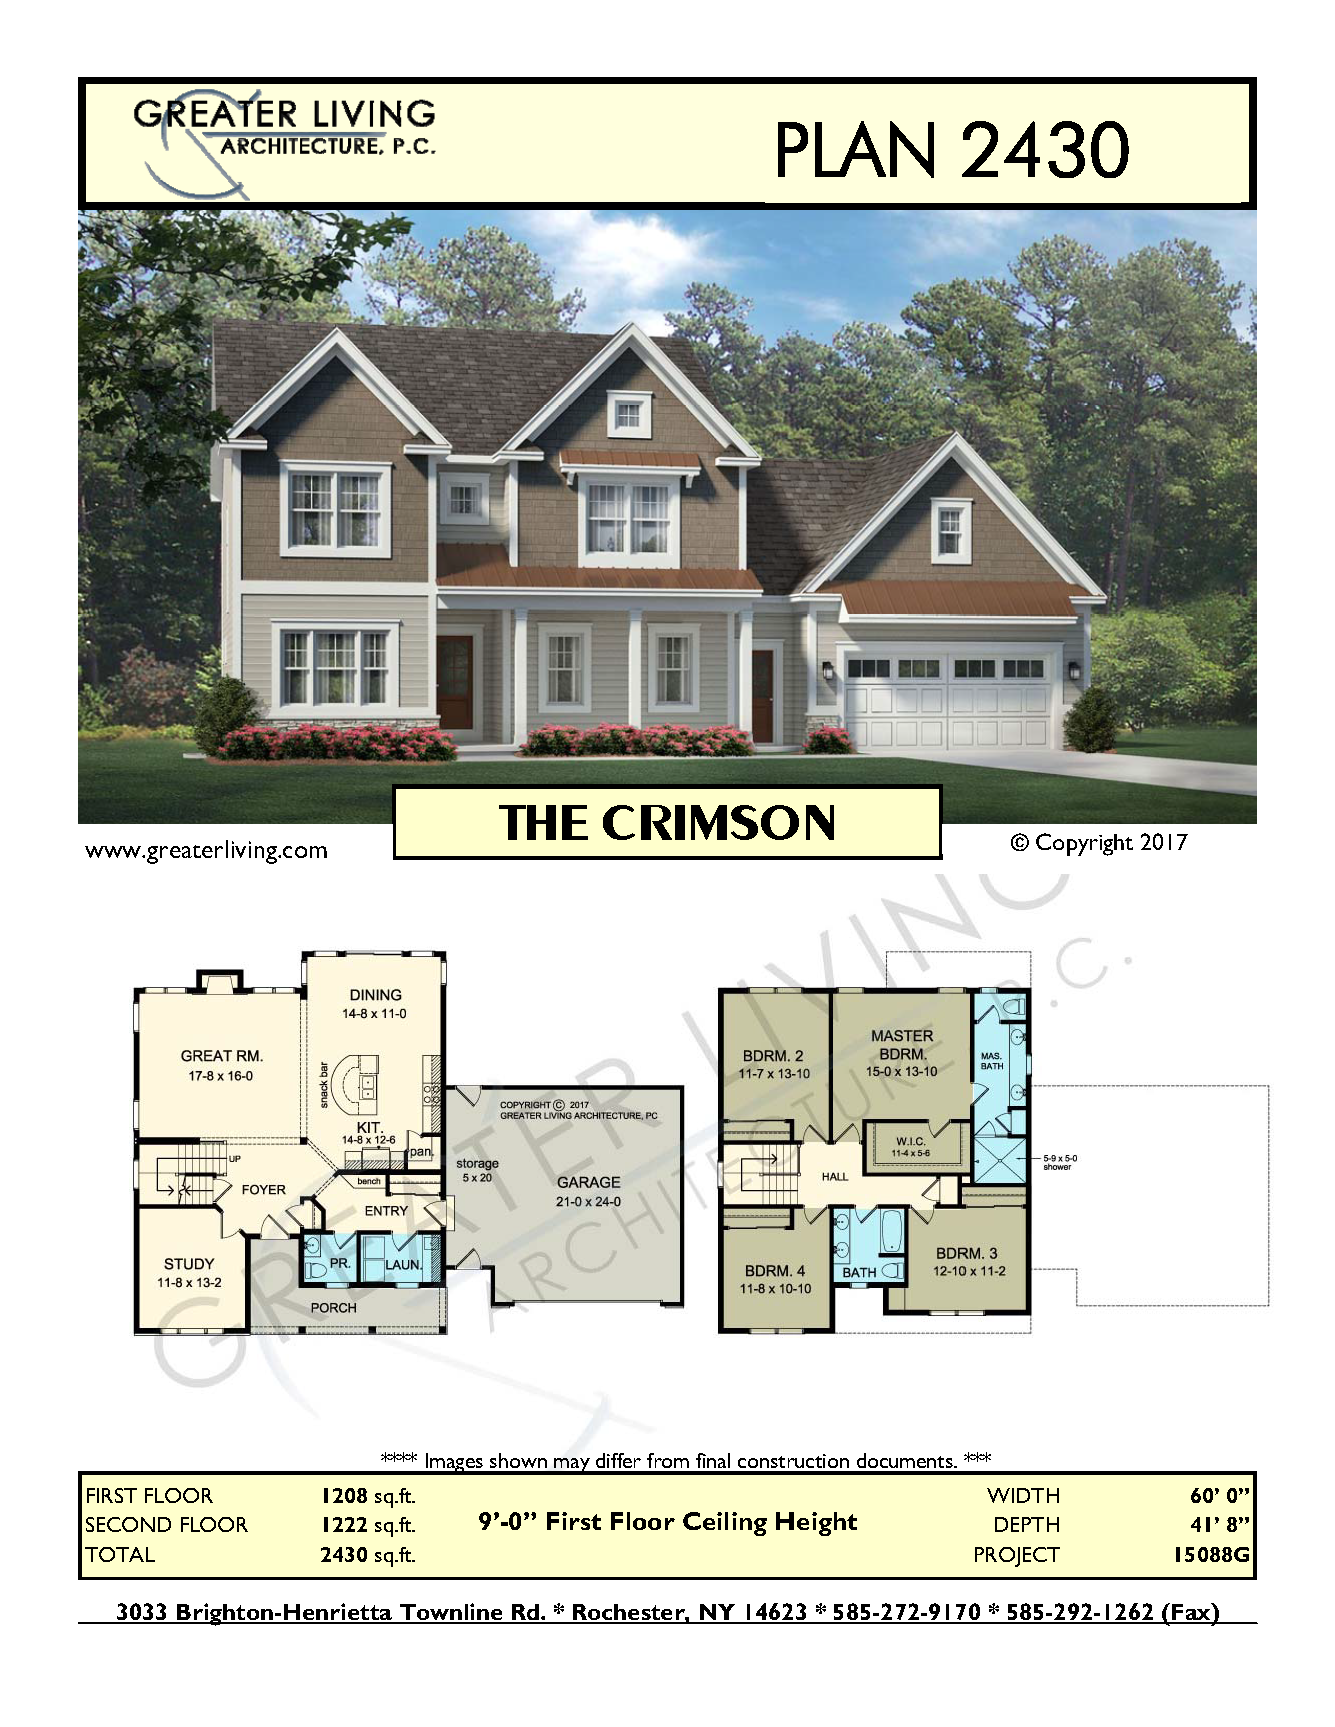 Plan 2430 The Crimson Two Story House Plan Greater Living Architecture Res Architecture Crimson Sims House Plans House Plans Craftsman House Plans